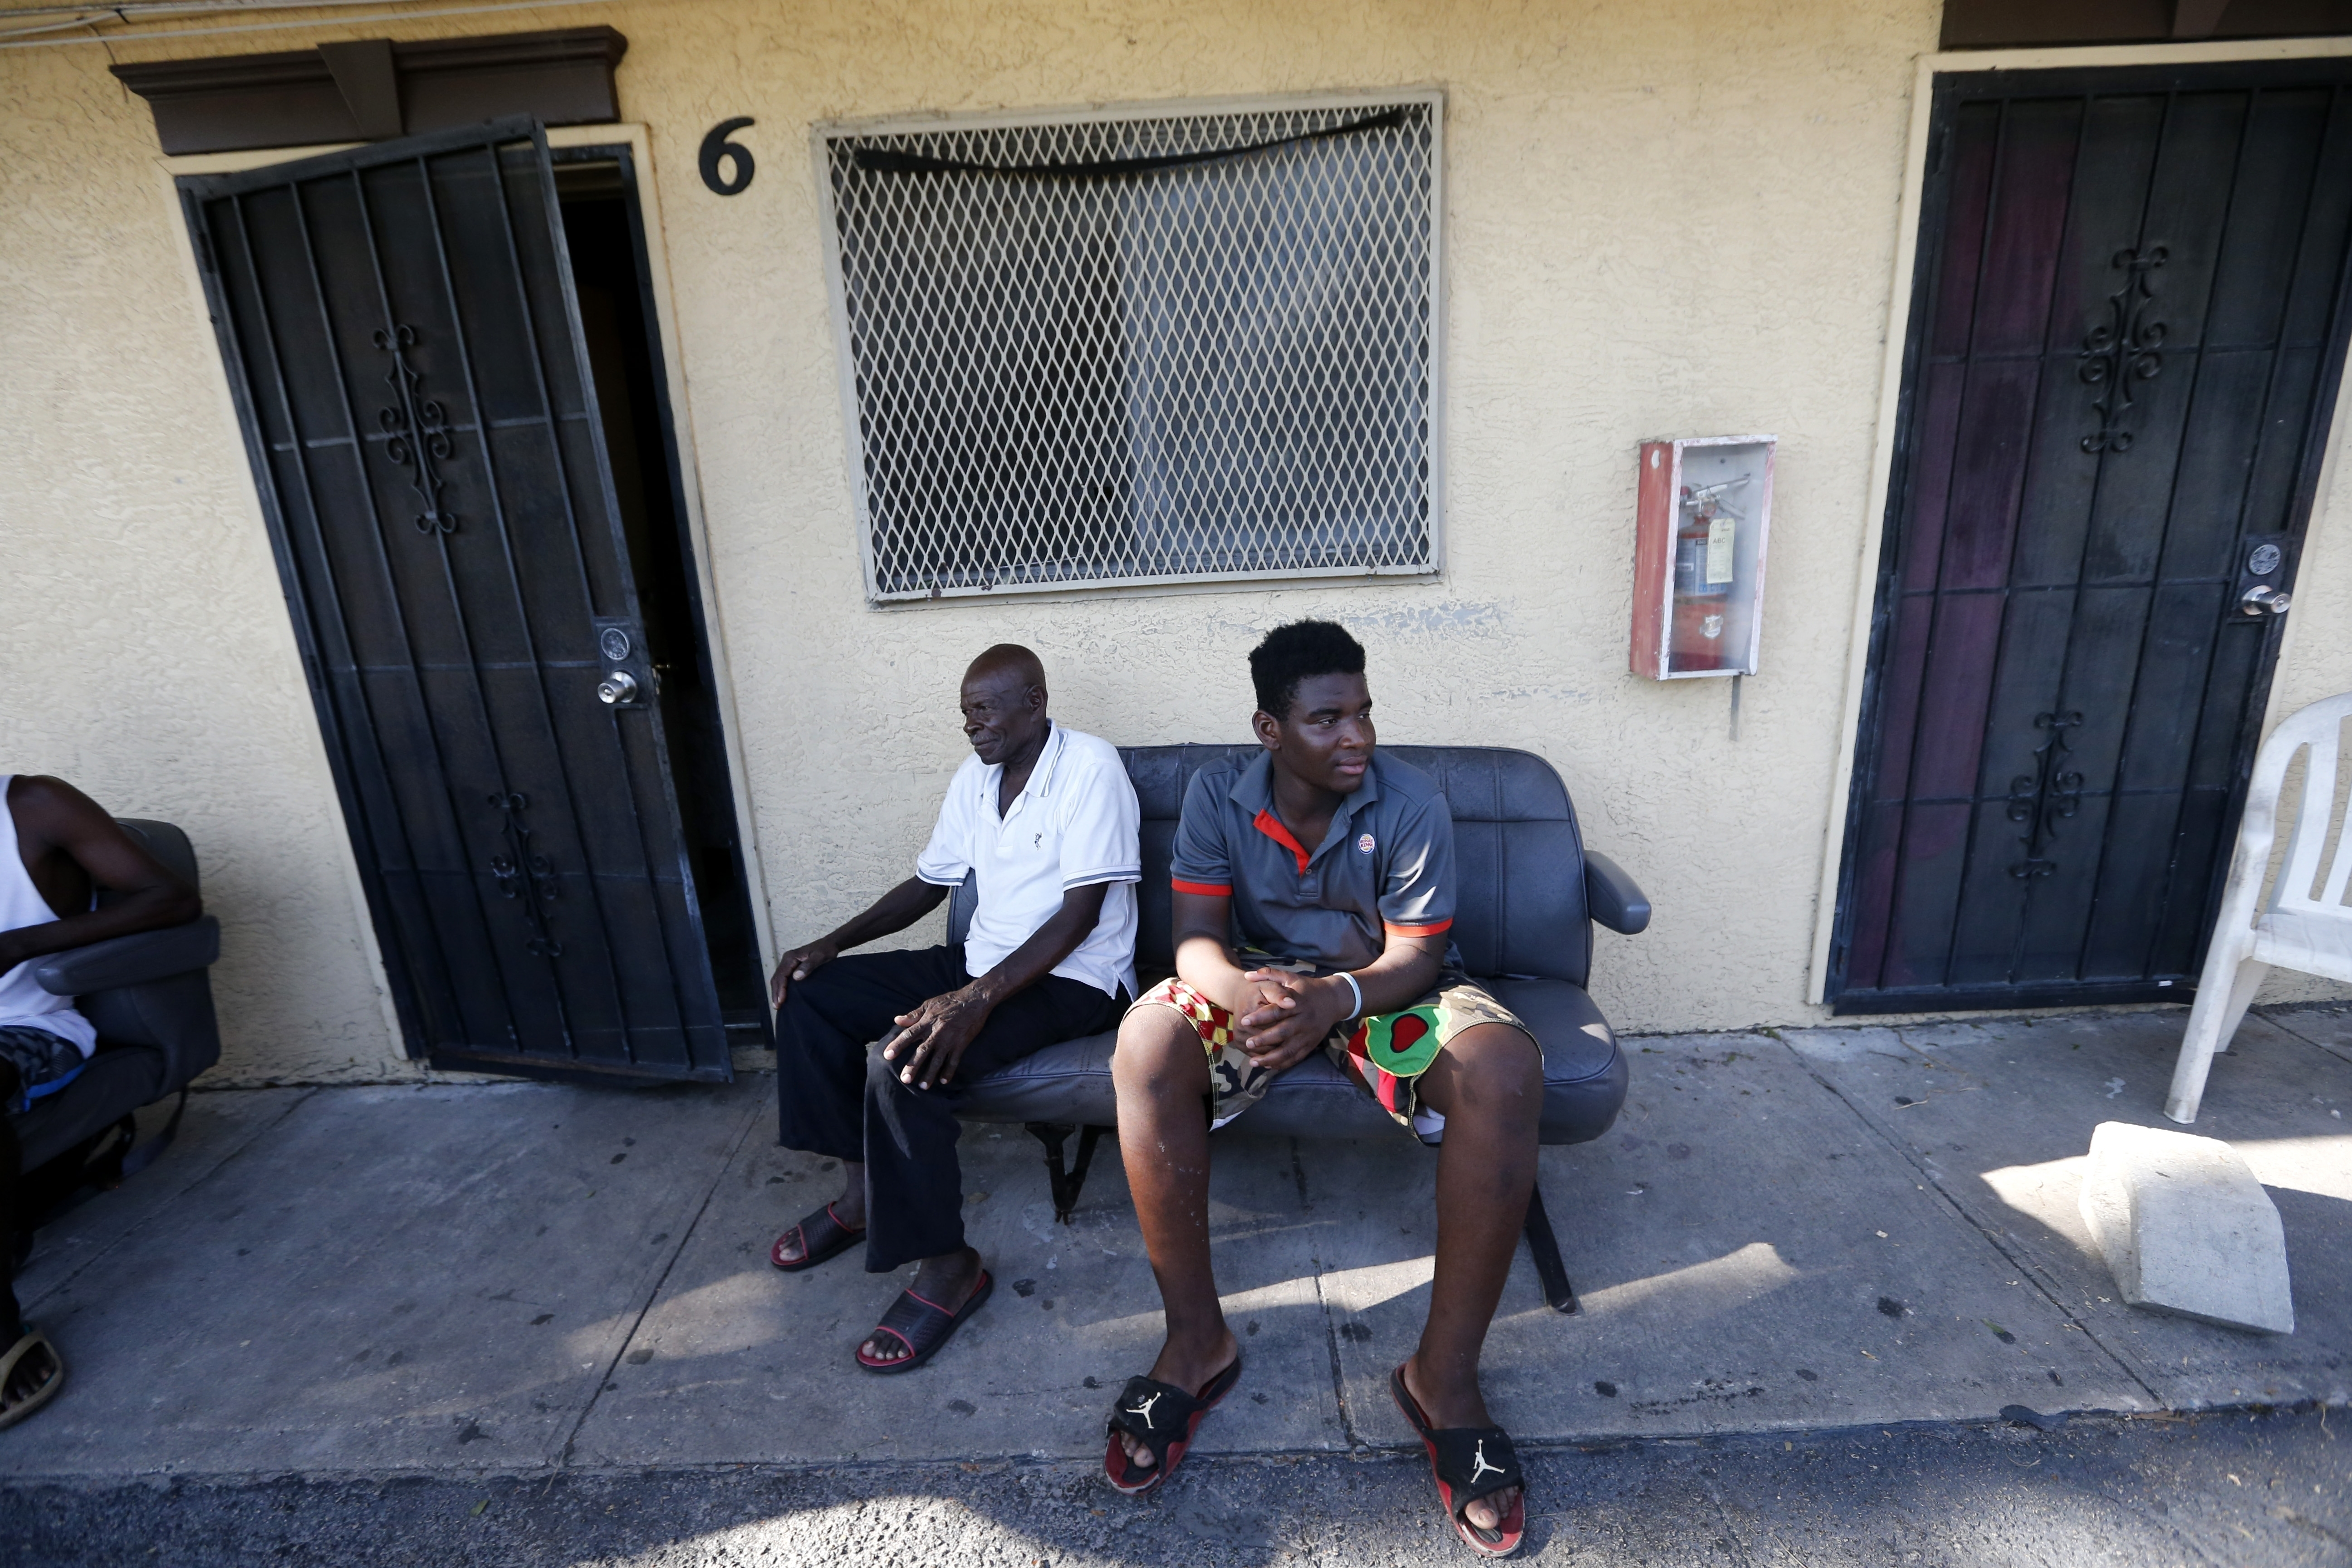 Irma The Poor-10 In this Sept. 12, 2017 photo, Woodchy Darius, right, sits outside the small cinderblock apartment he lives in, in the aftermath of Hurricane Irma, in Immokalee, Fla. A Haitian immigrant, he is trying to decide to go to school next week, or work in the fields to make up for lost income due to the storm. (AP Photo/Gerald Herbert)